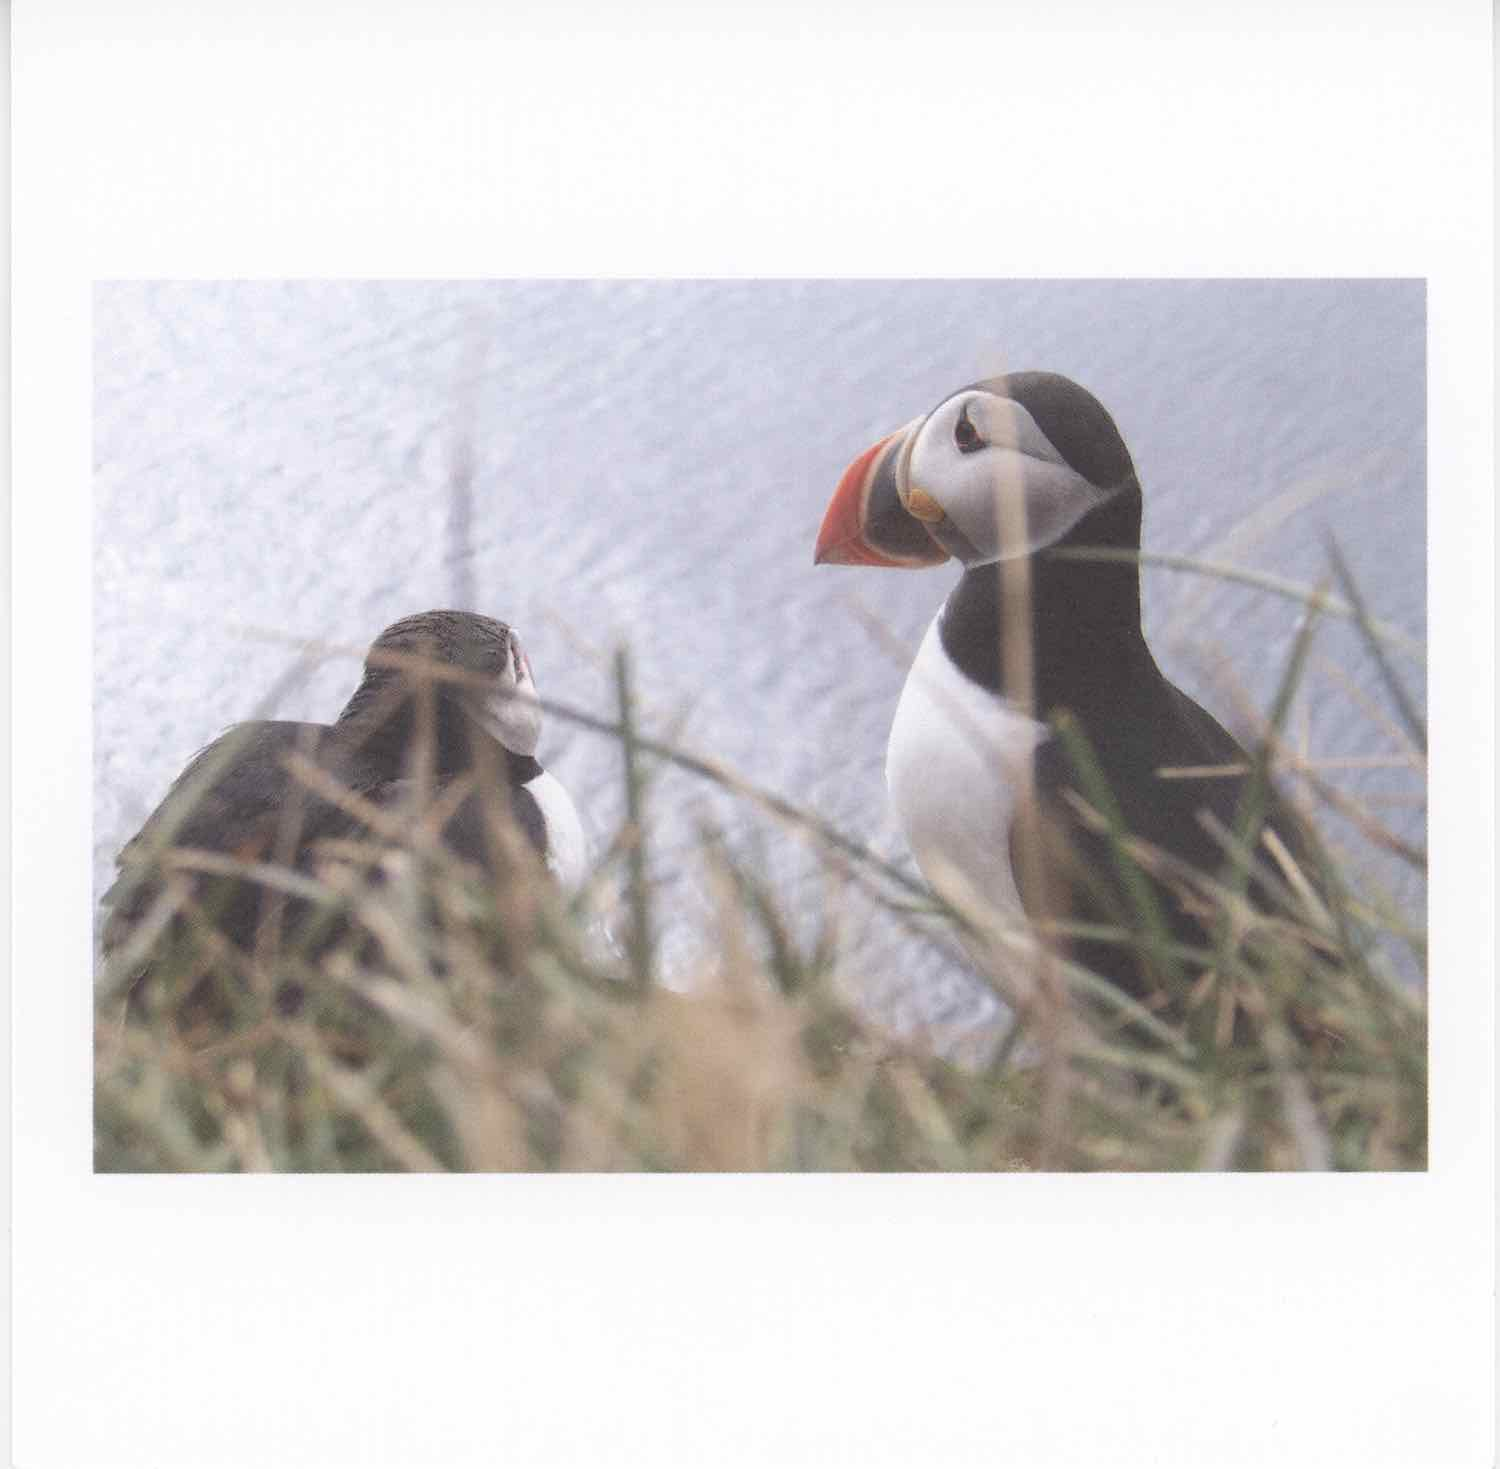 Two Icelandic puffin birds. The bird on the right is most visible. He's facing to the left. The bird on the left side of the photo is facing right, but he's tucked down sitting on the ground and looking out towards the ocean in the distance. The photographer is shooting through green and tan grass. The right side bird has a large, orange, yellow, and black beak and a cute whie and black face. His head is mostly black feathers, which wrap around to his back. His chest is white. The birds are unique looking, almost like penguins.